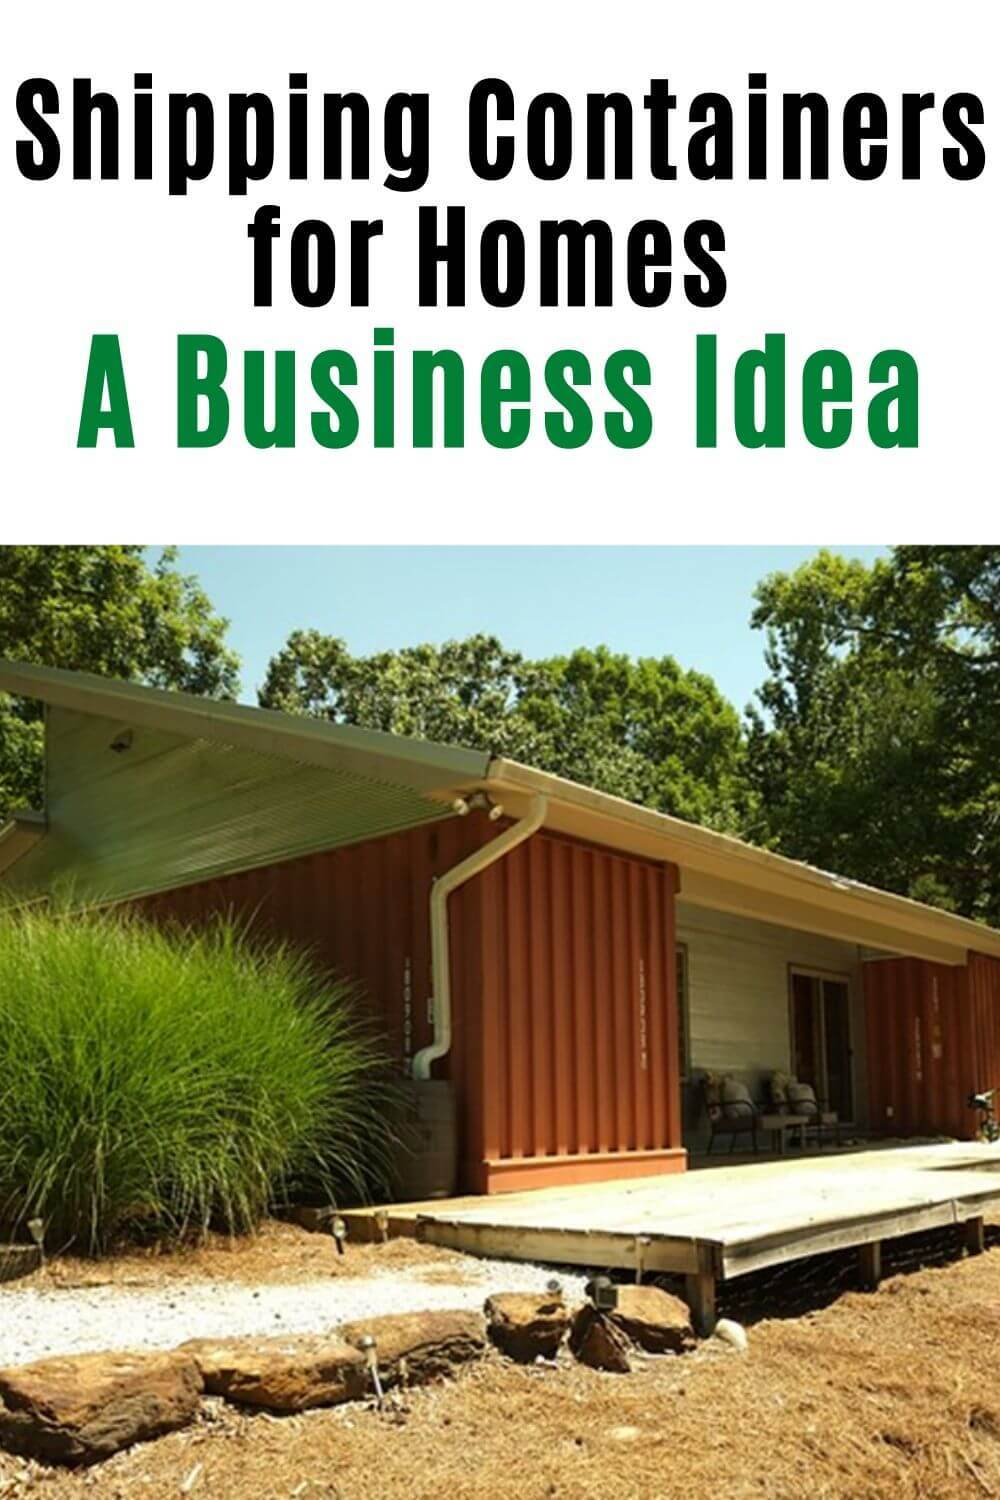 shopping containers for homes - a business idea